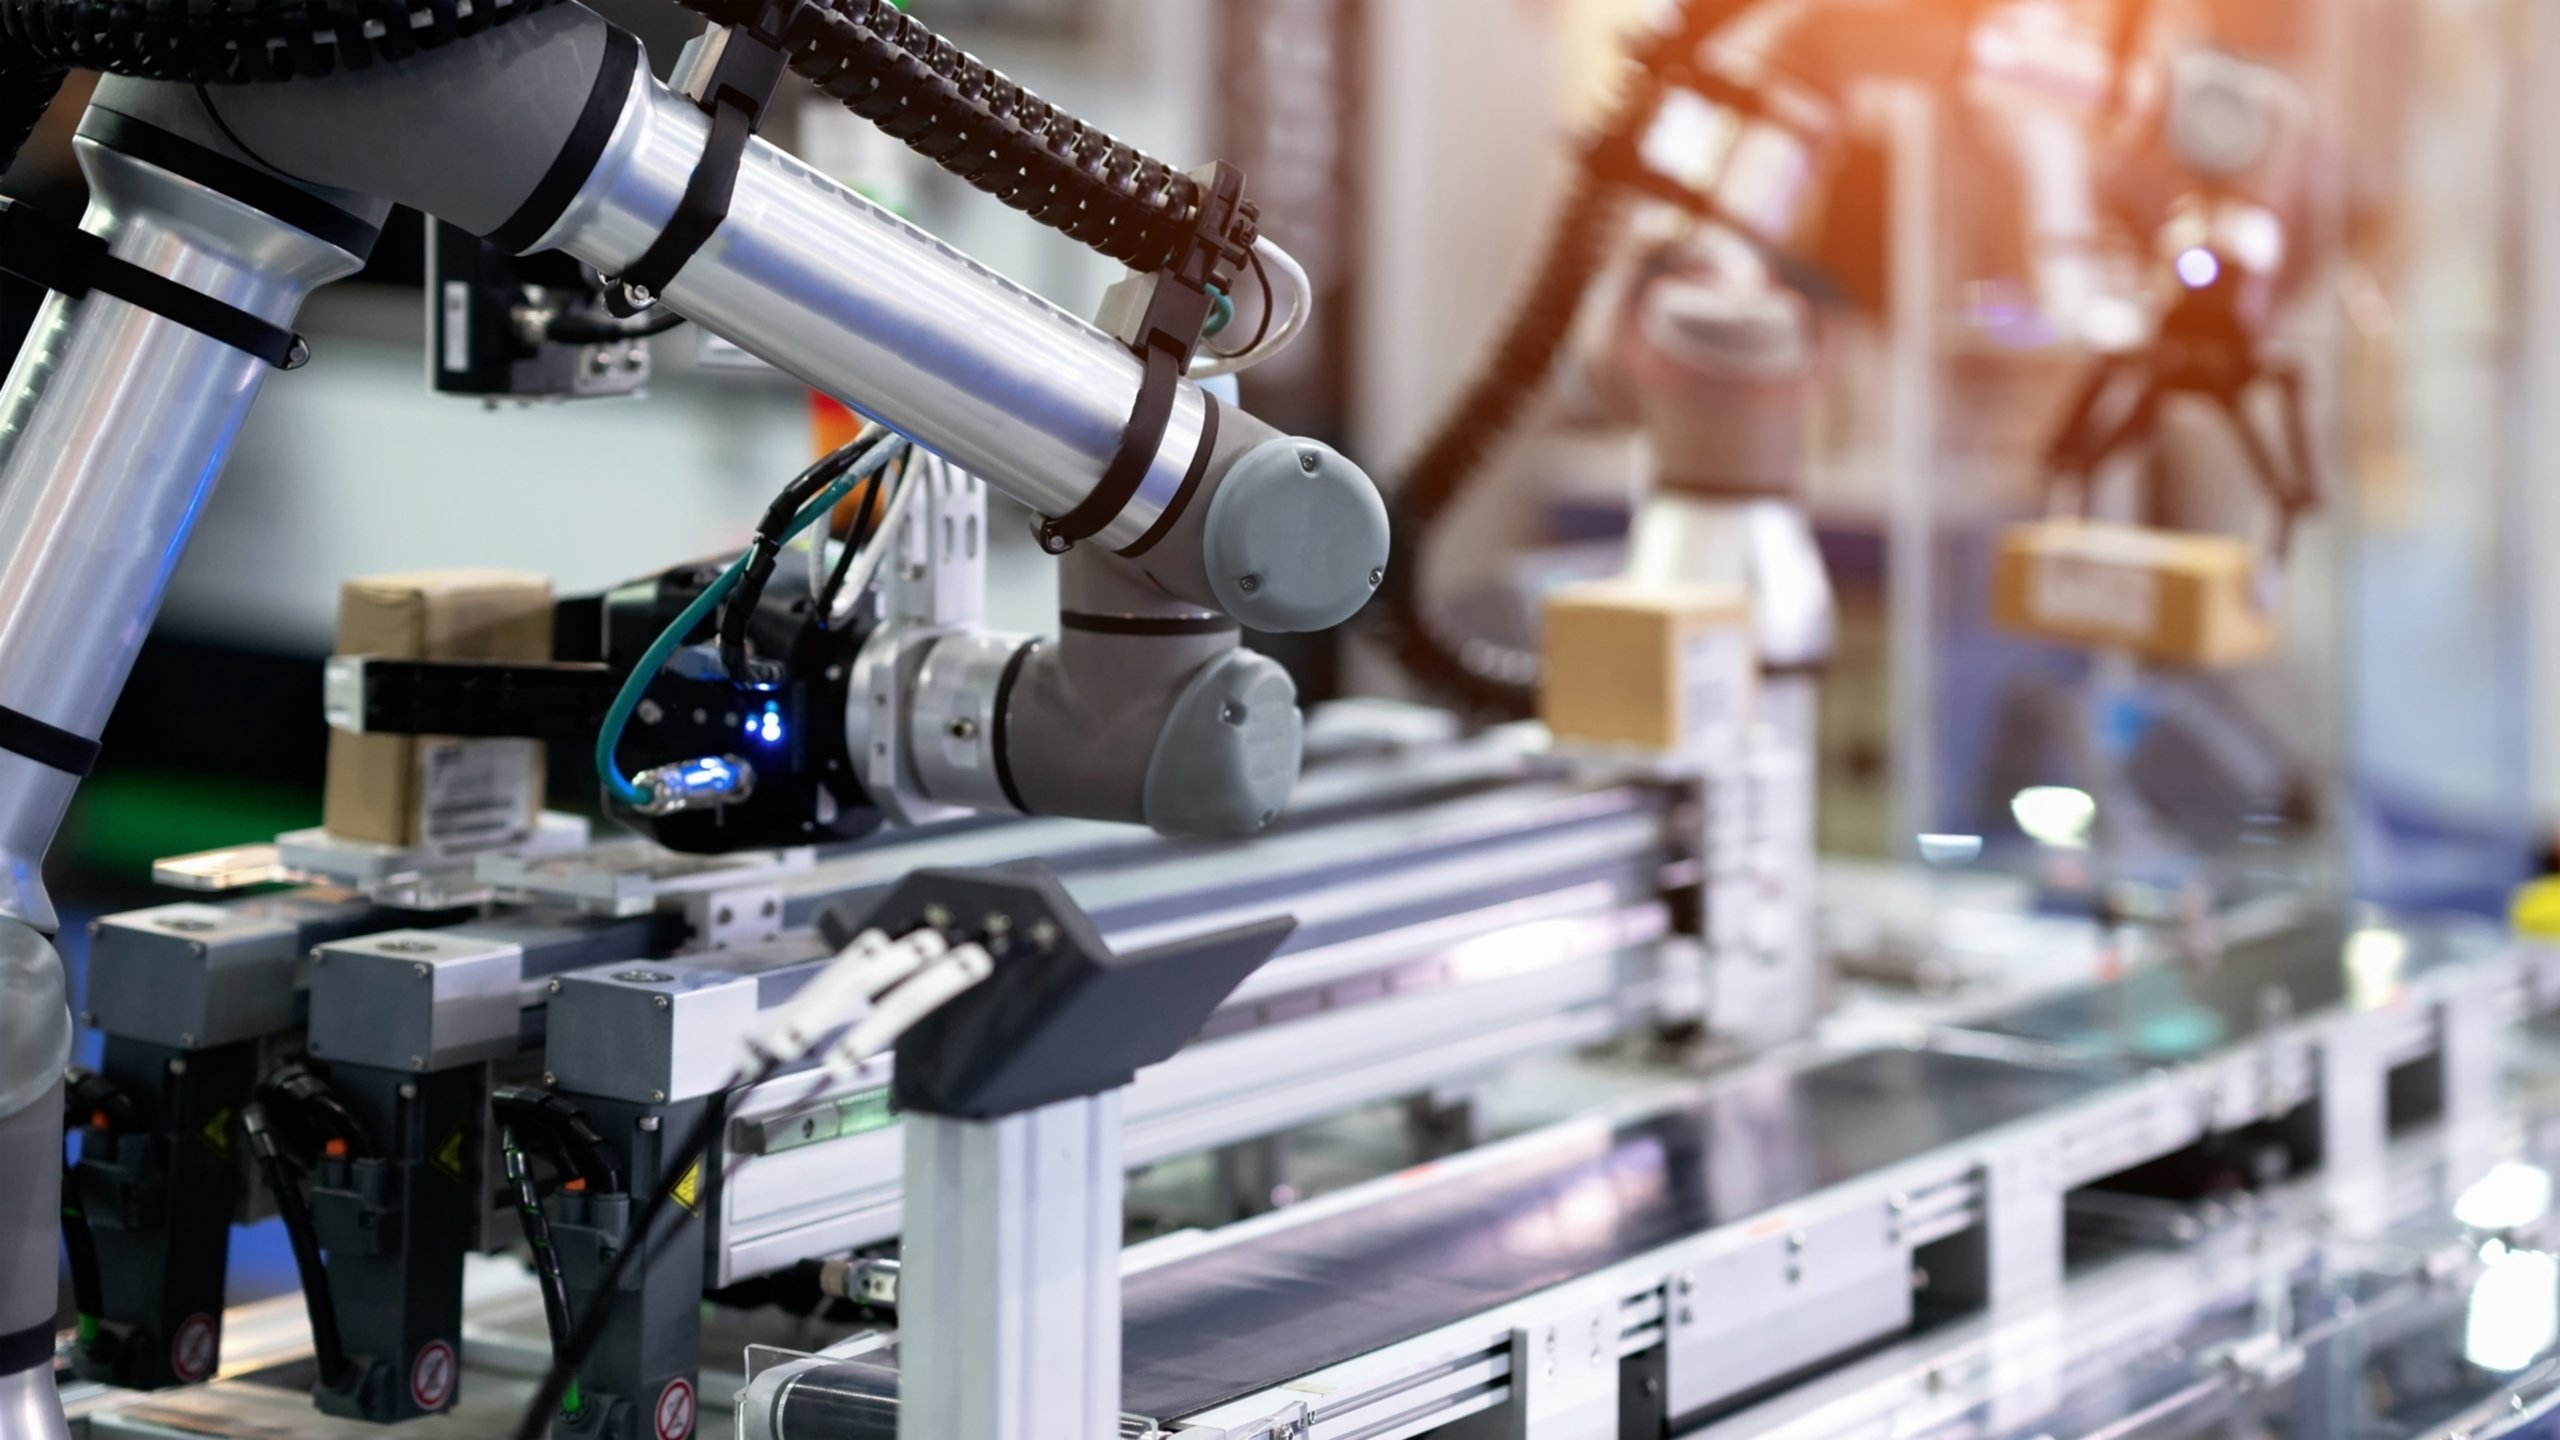 A collaborative robot placing boxes on a conveyor for labels to be scanned while another picks product that has completed the process and is carrying it to the next operation station.